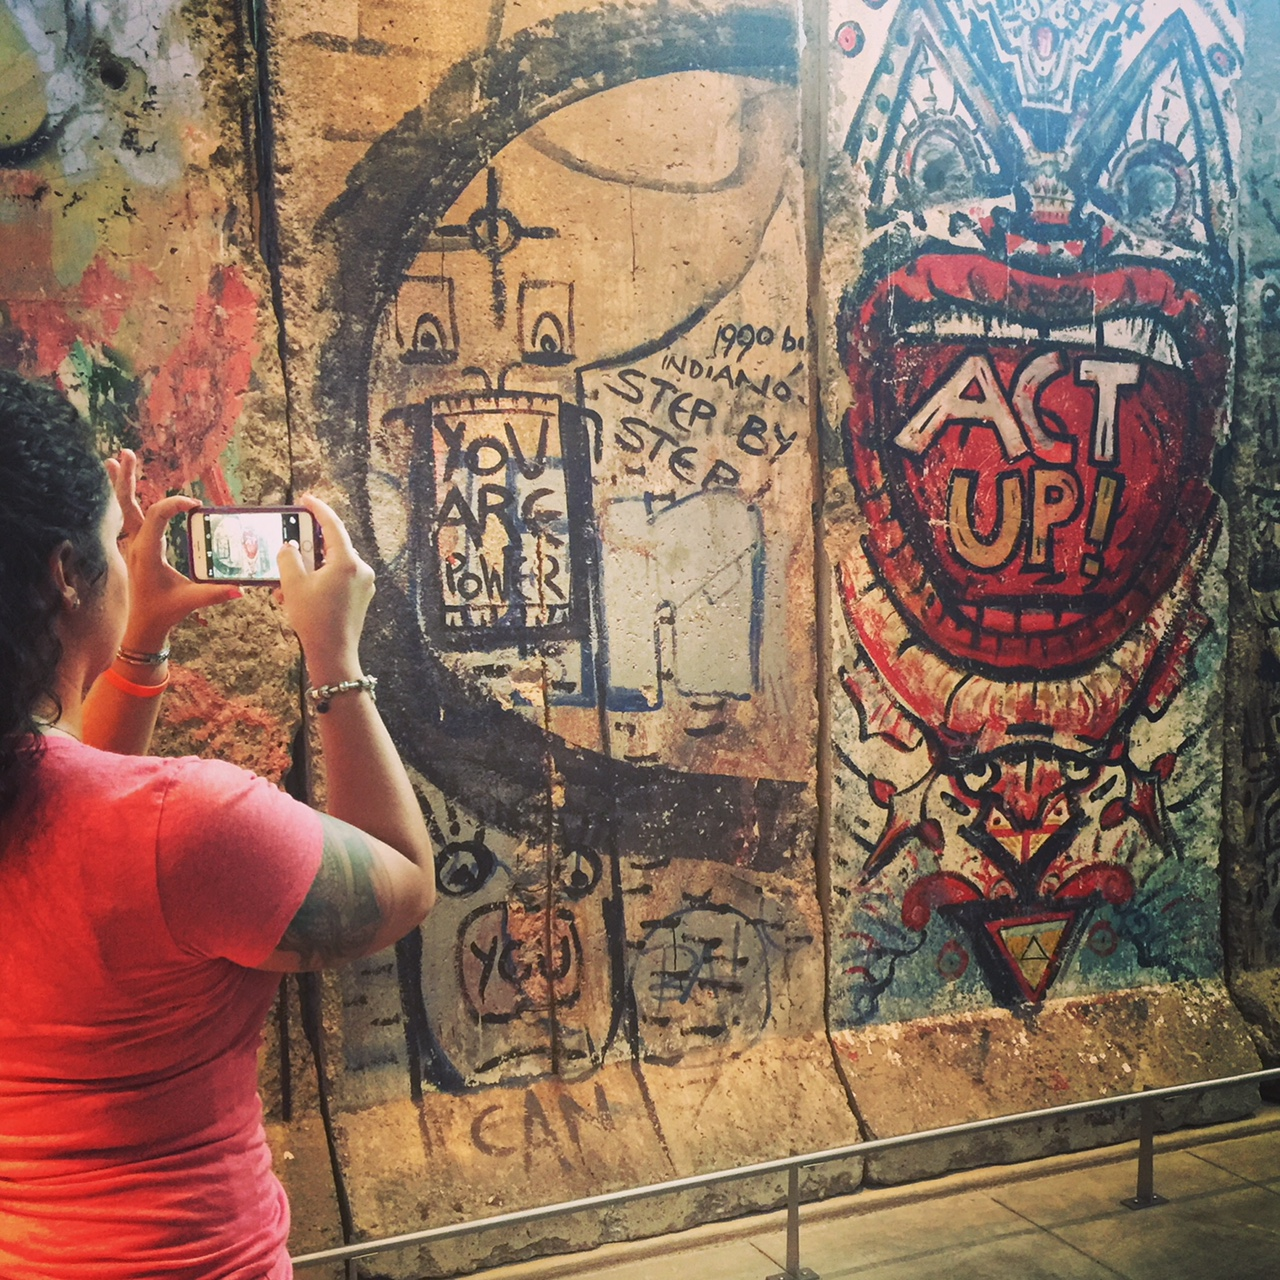 Me taking a photo of remnants of the Berlin Wall at the Newseum in Washington D.C.  Photo credit: Megan Slaughter